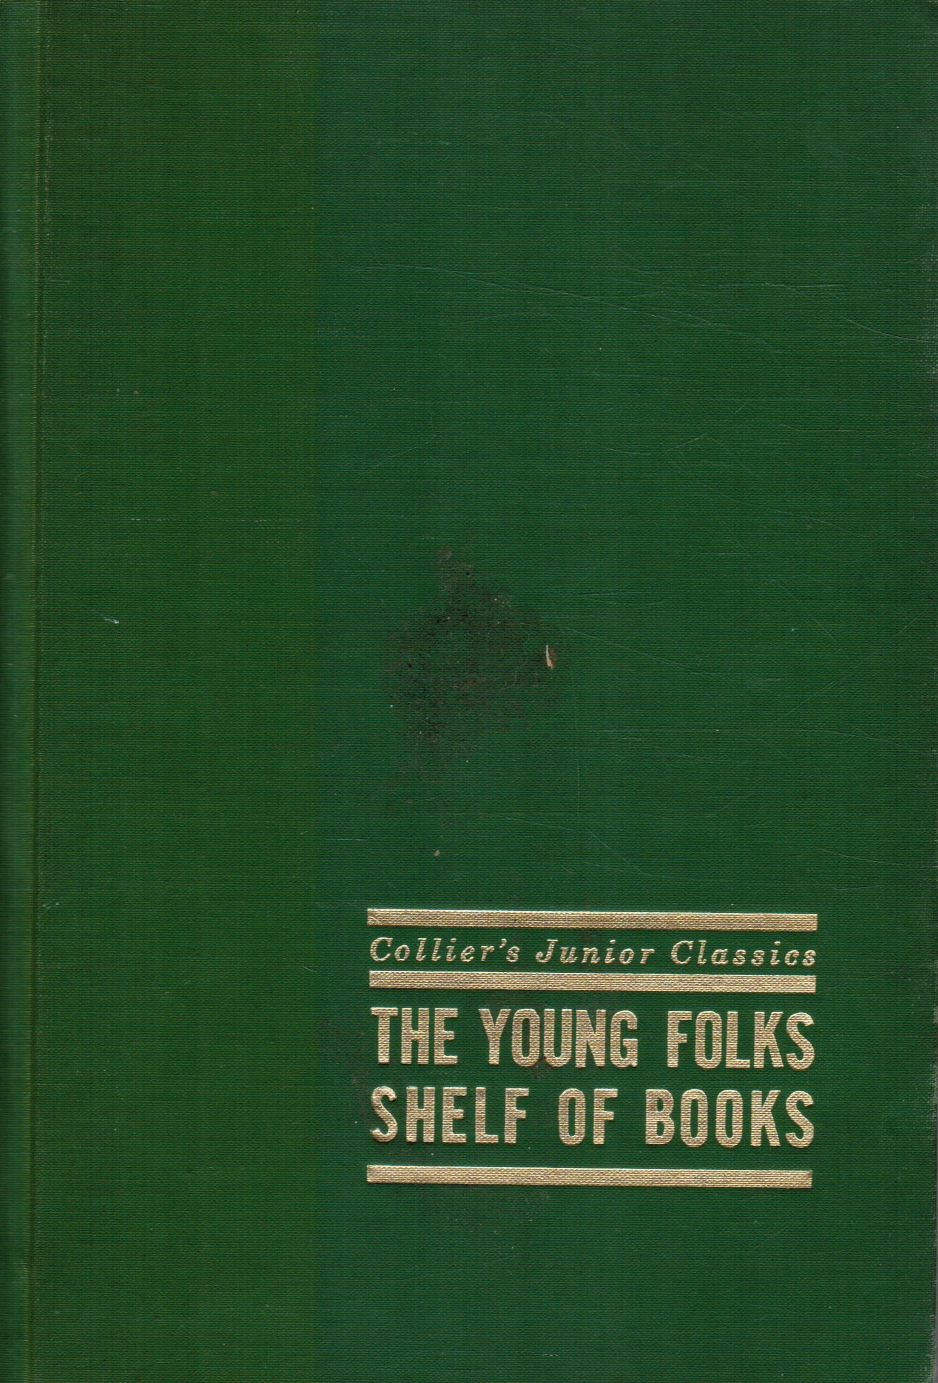 Image for Call of Adventure: Collier's Junior Classics Vol. 9